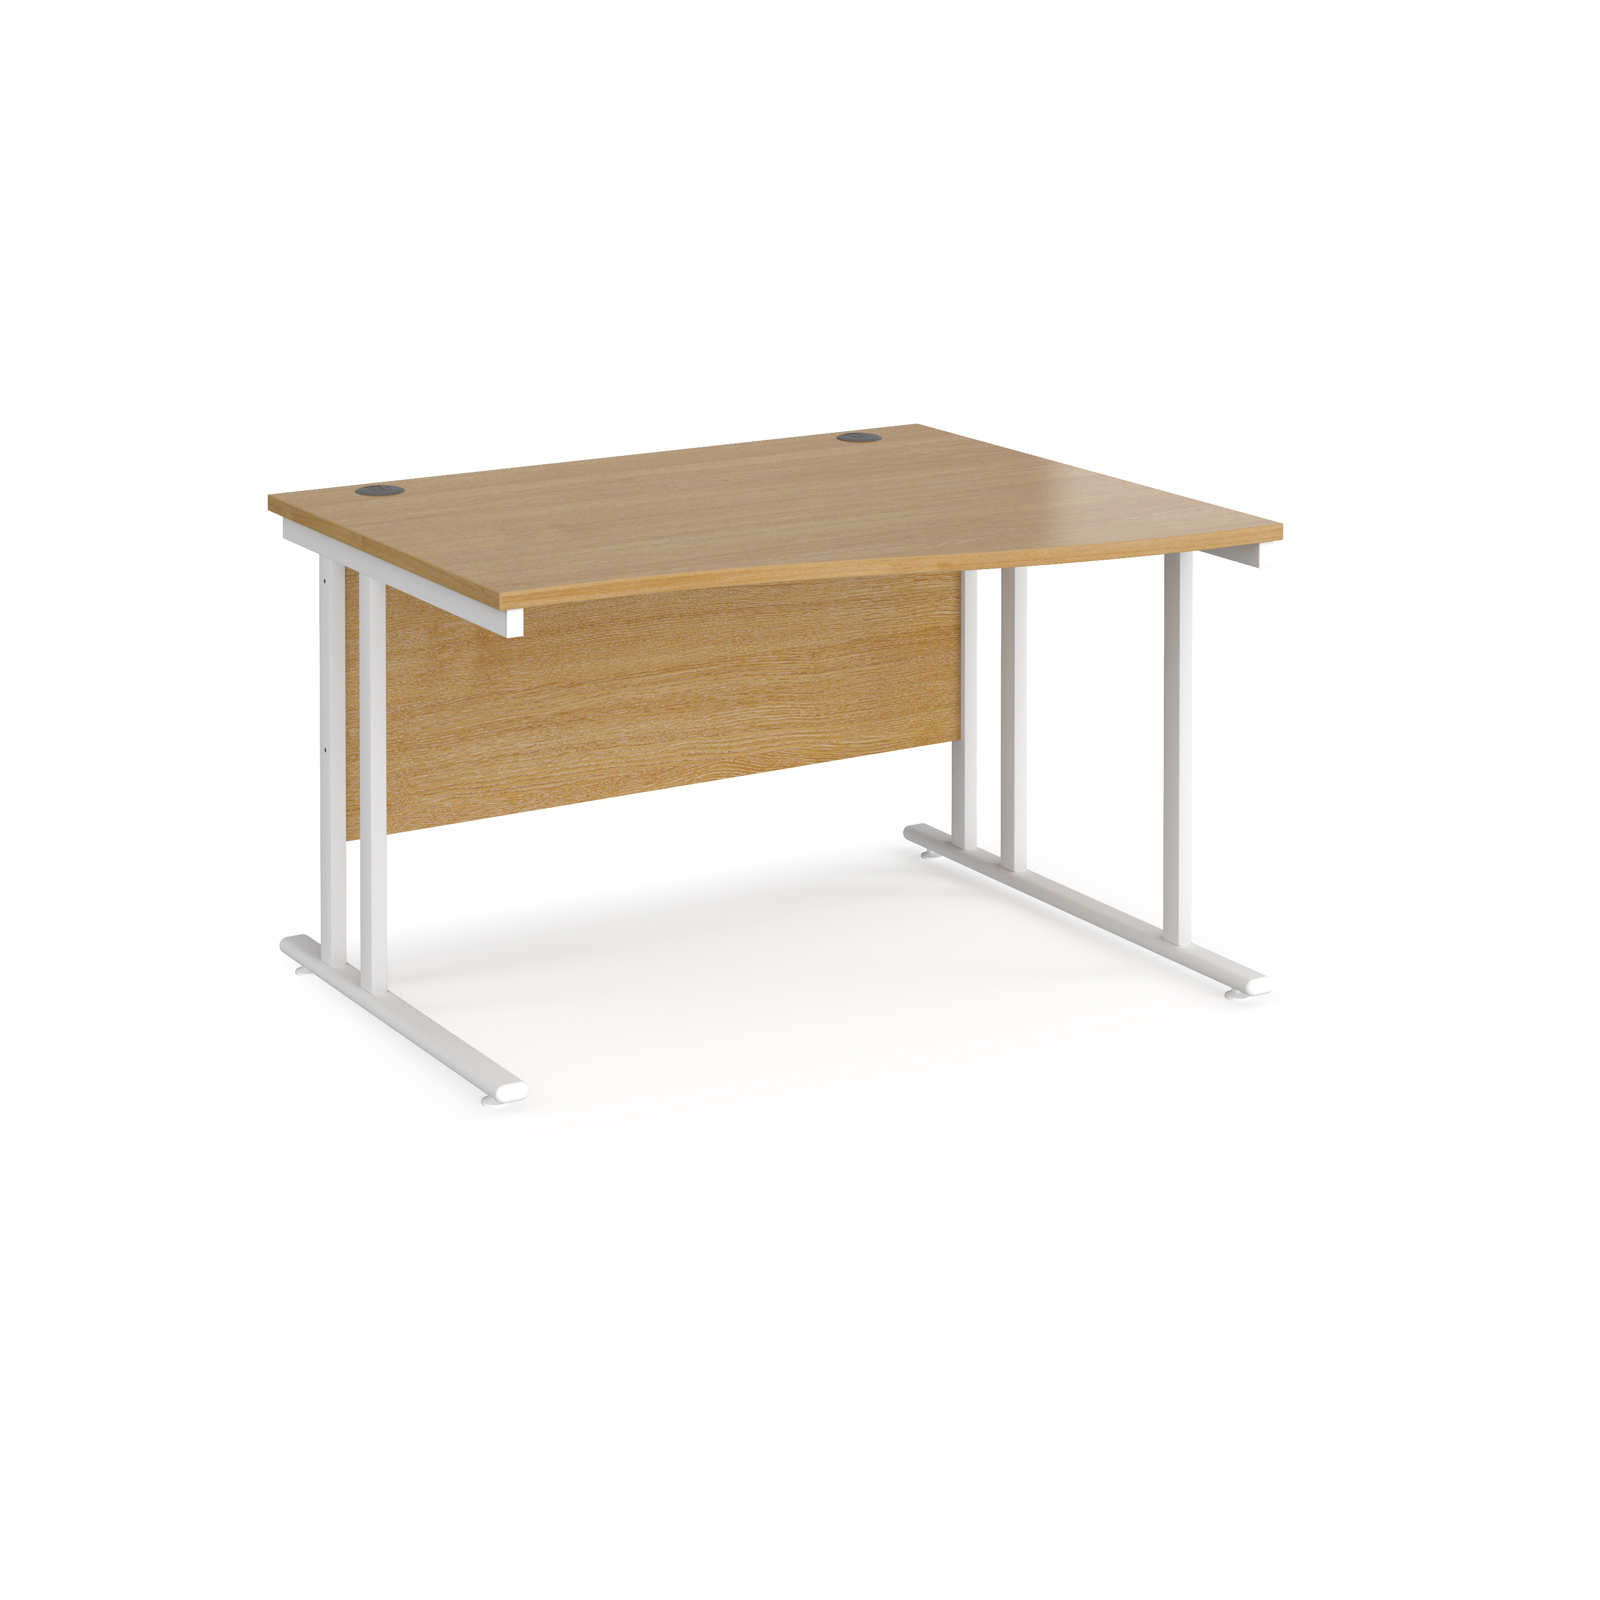 Maestro 25 right hand wave desk 1200mm wide - white cantilever leg frame, oak top